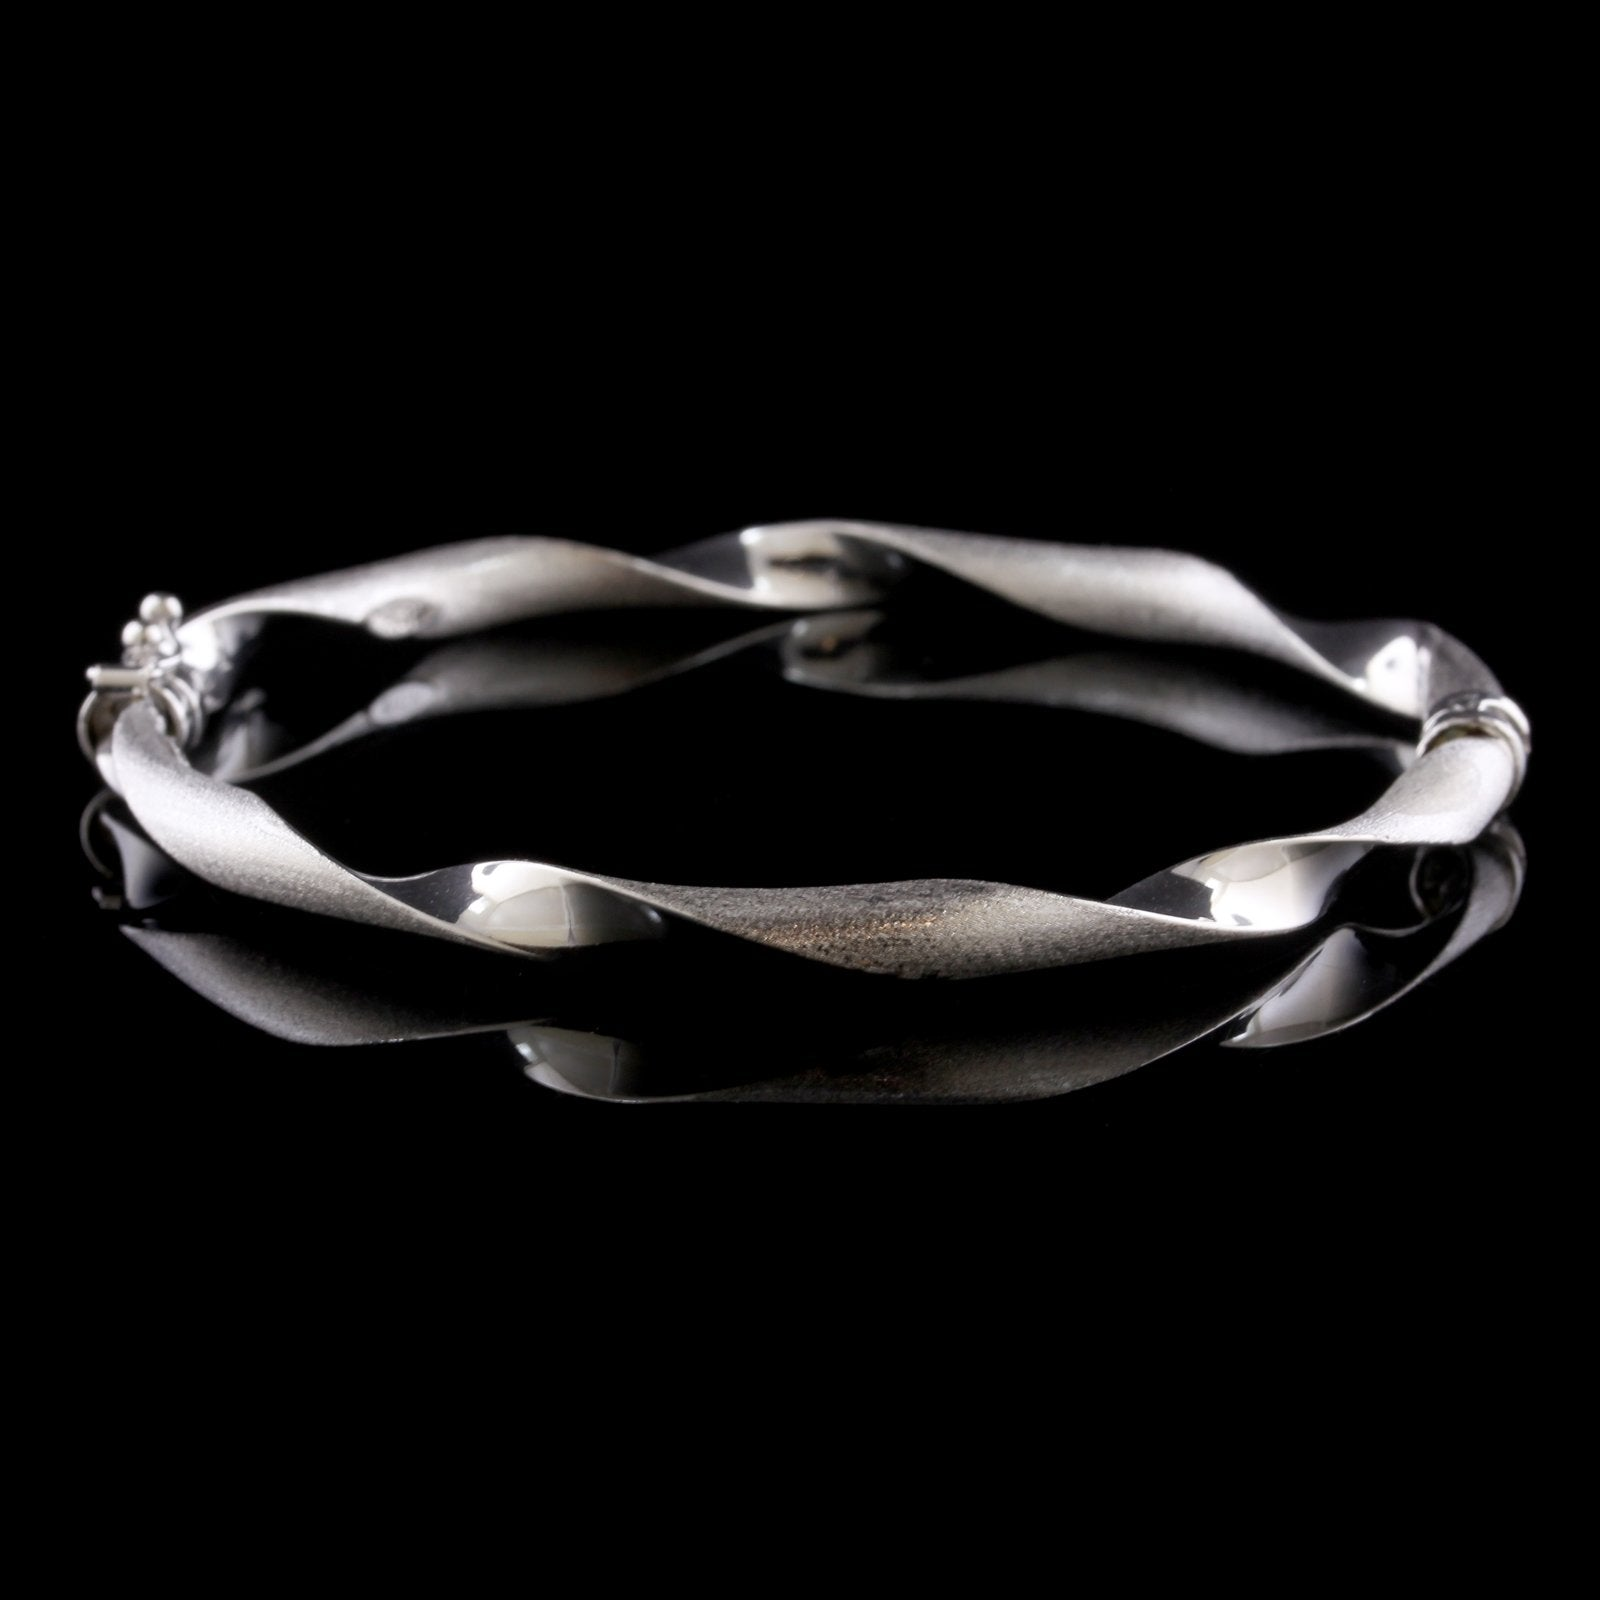 14K White Gold Estate Twisted Bangle Bracelet